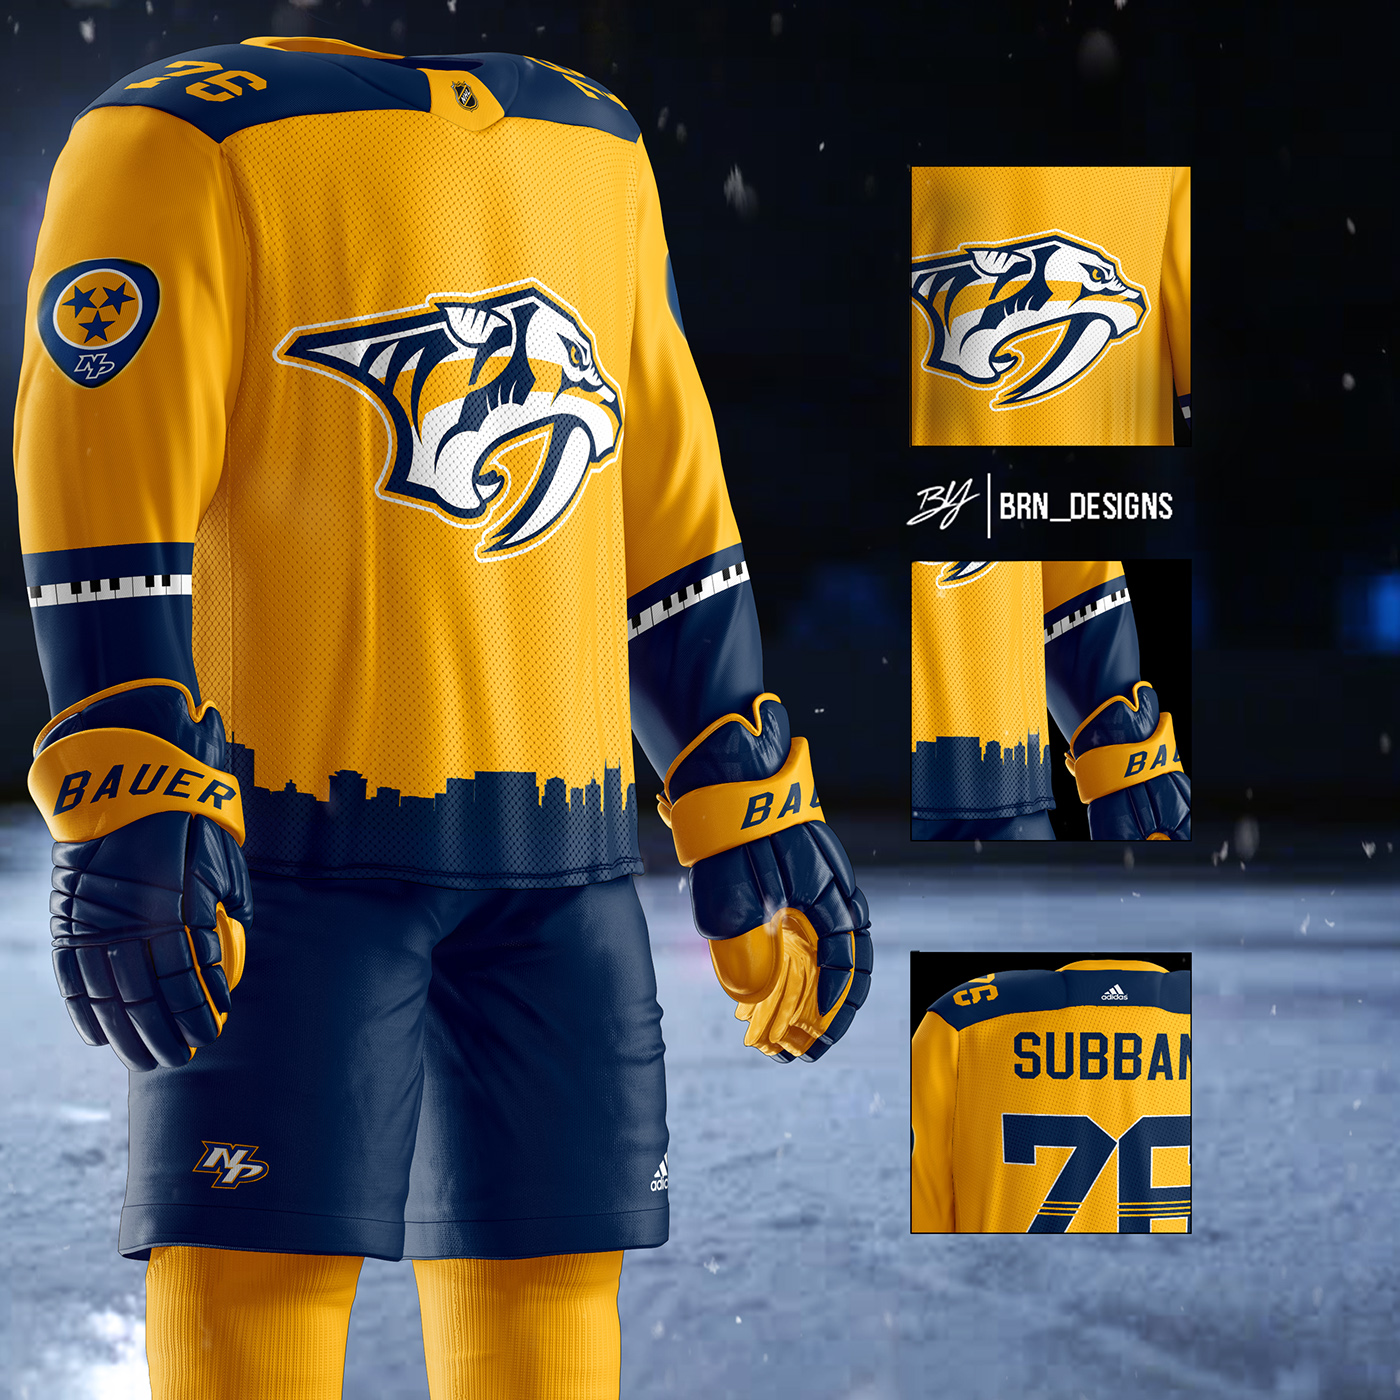 new styles 75452 00801 coupon for nashville predators blue jersey 7babc 5663c